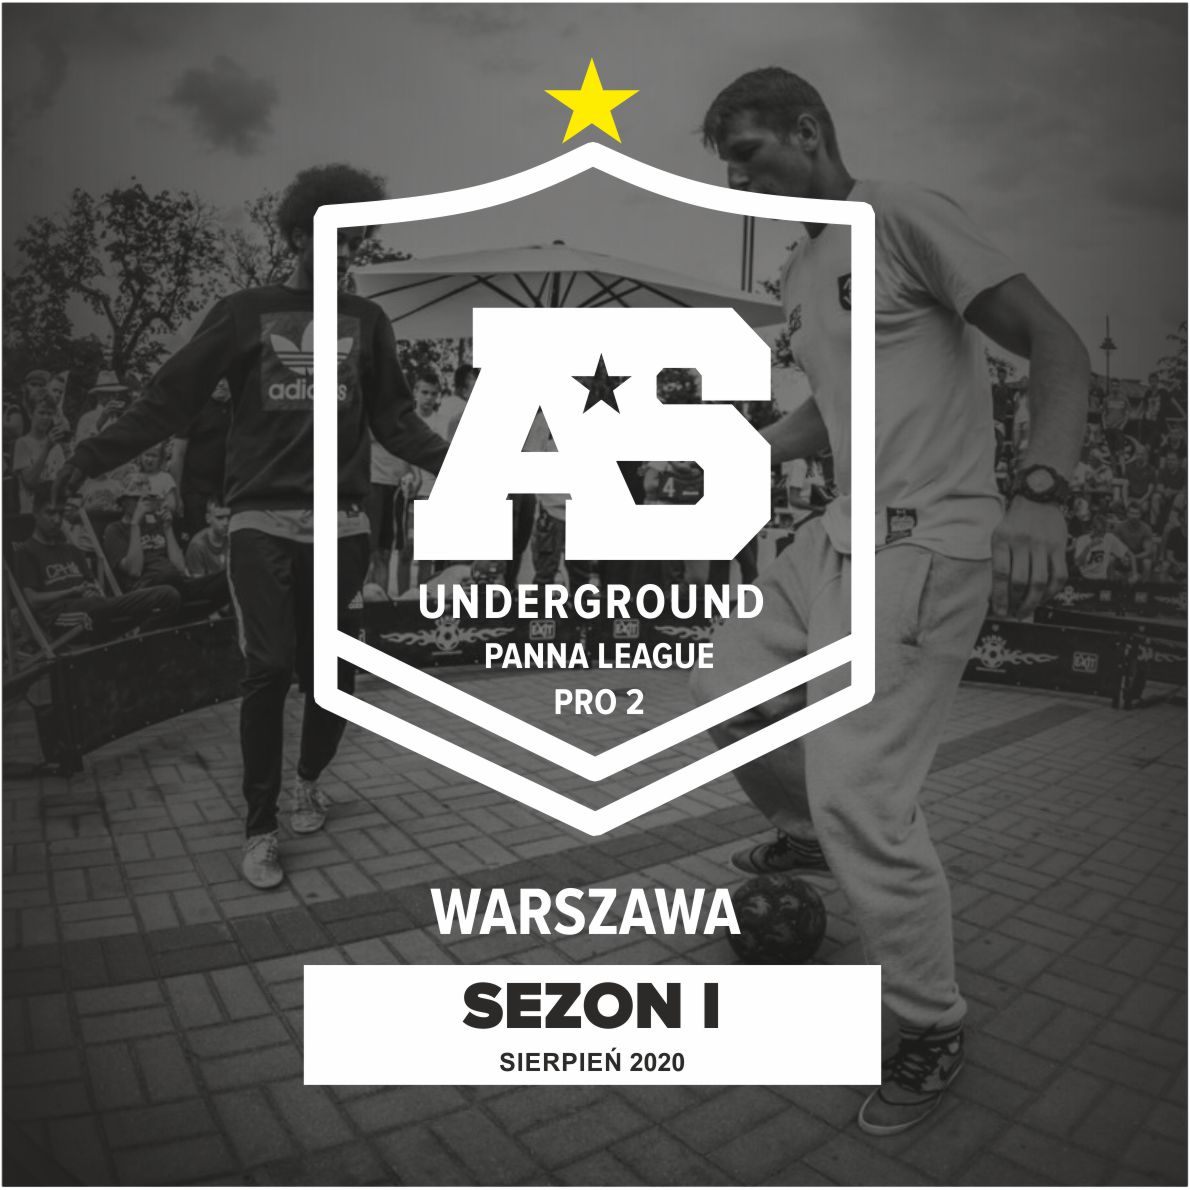 AS UNDERGROUND PANNA LEAGUE PRO 2